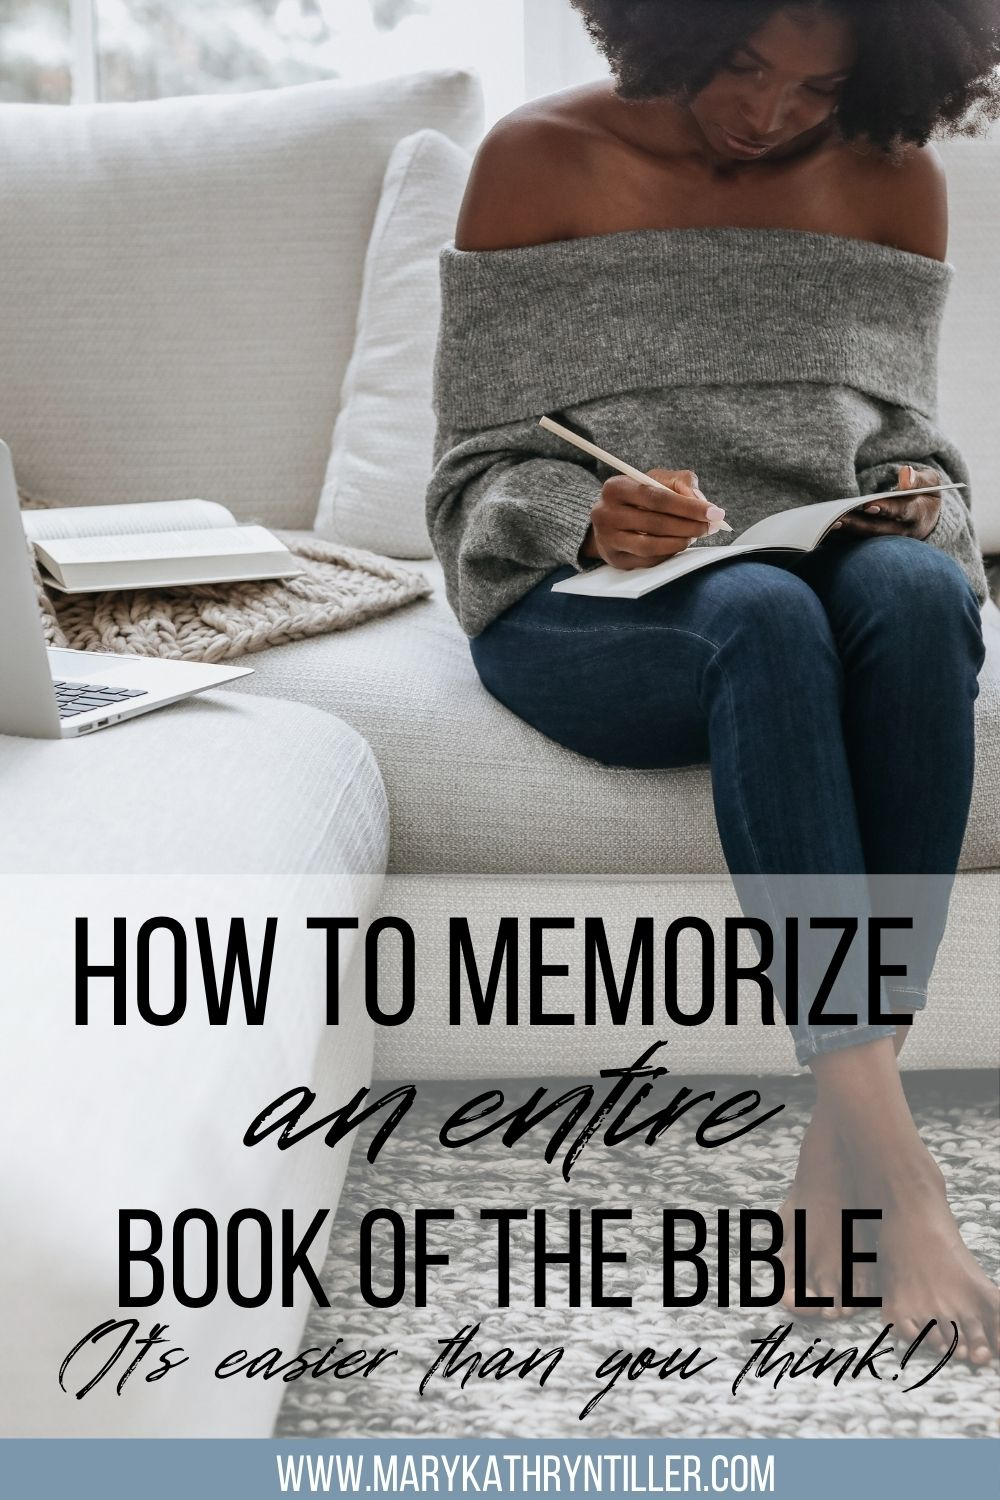 How to memorize an entire book of the bible